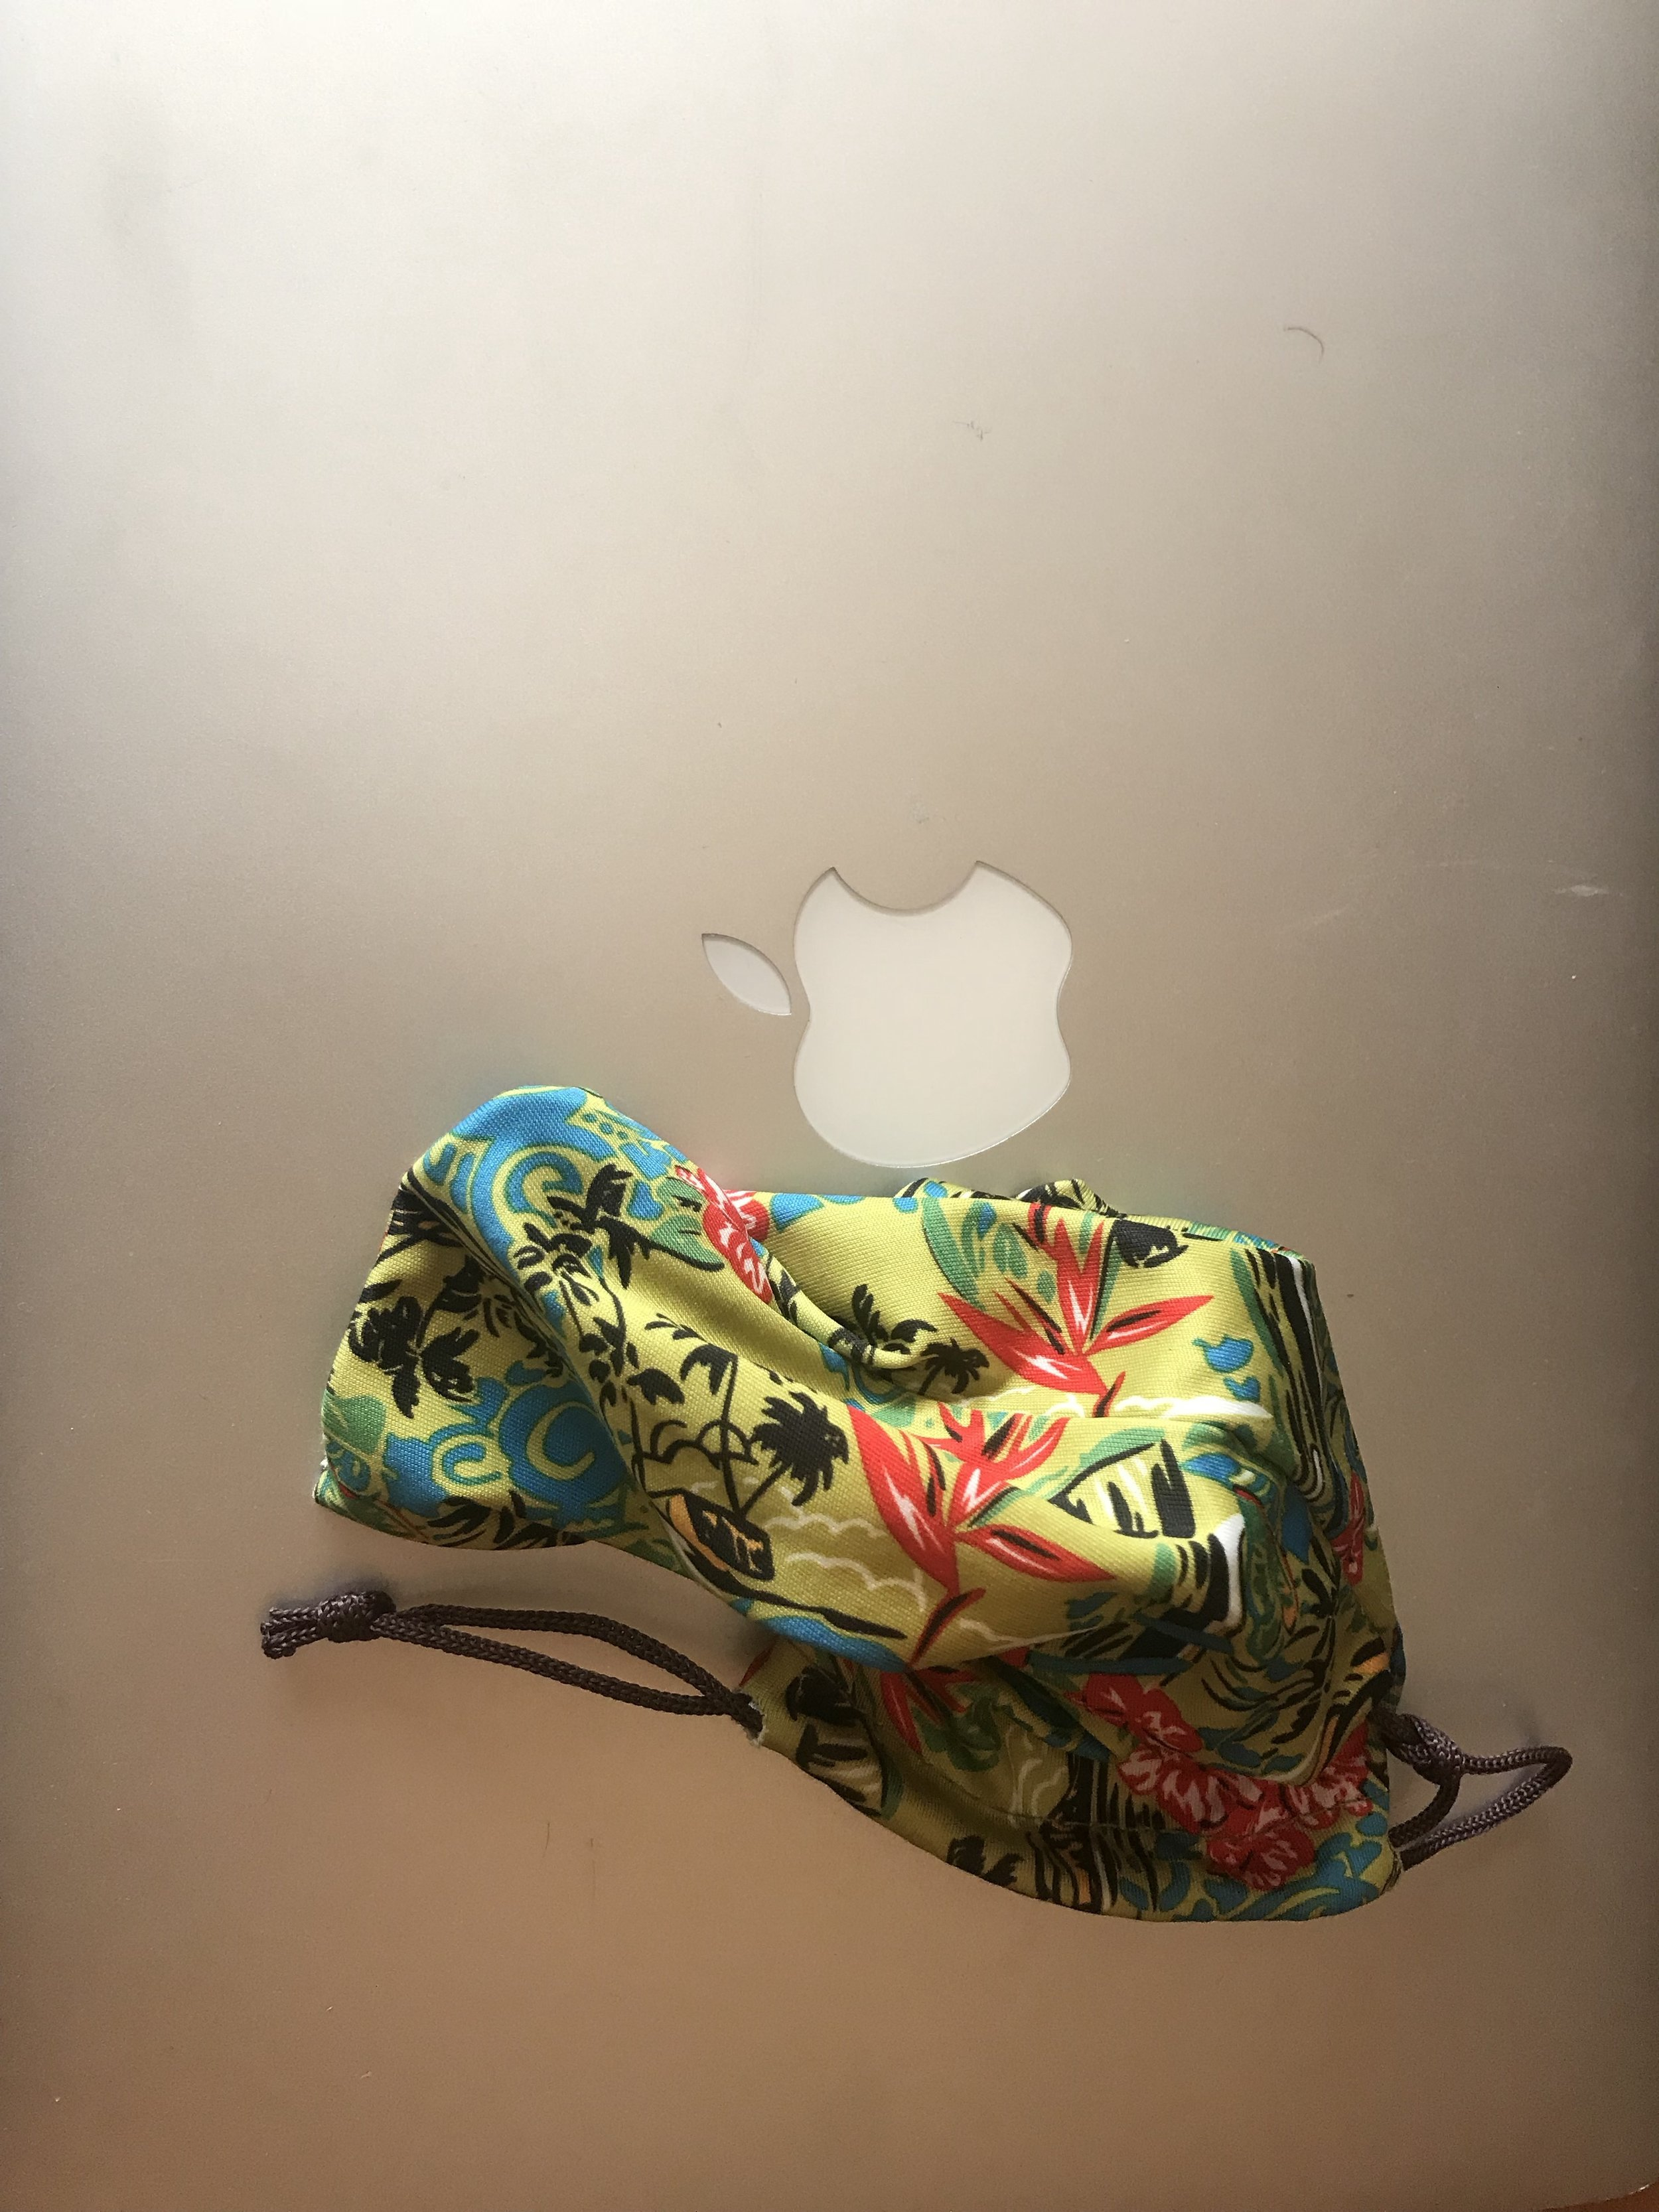 'MacBook Pro and Lea Ann's Coinpurse', a photographic composition in the author's private collection, September, 2018.